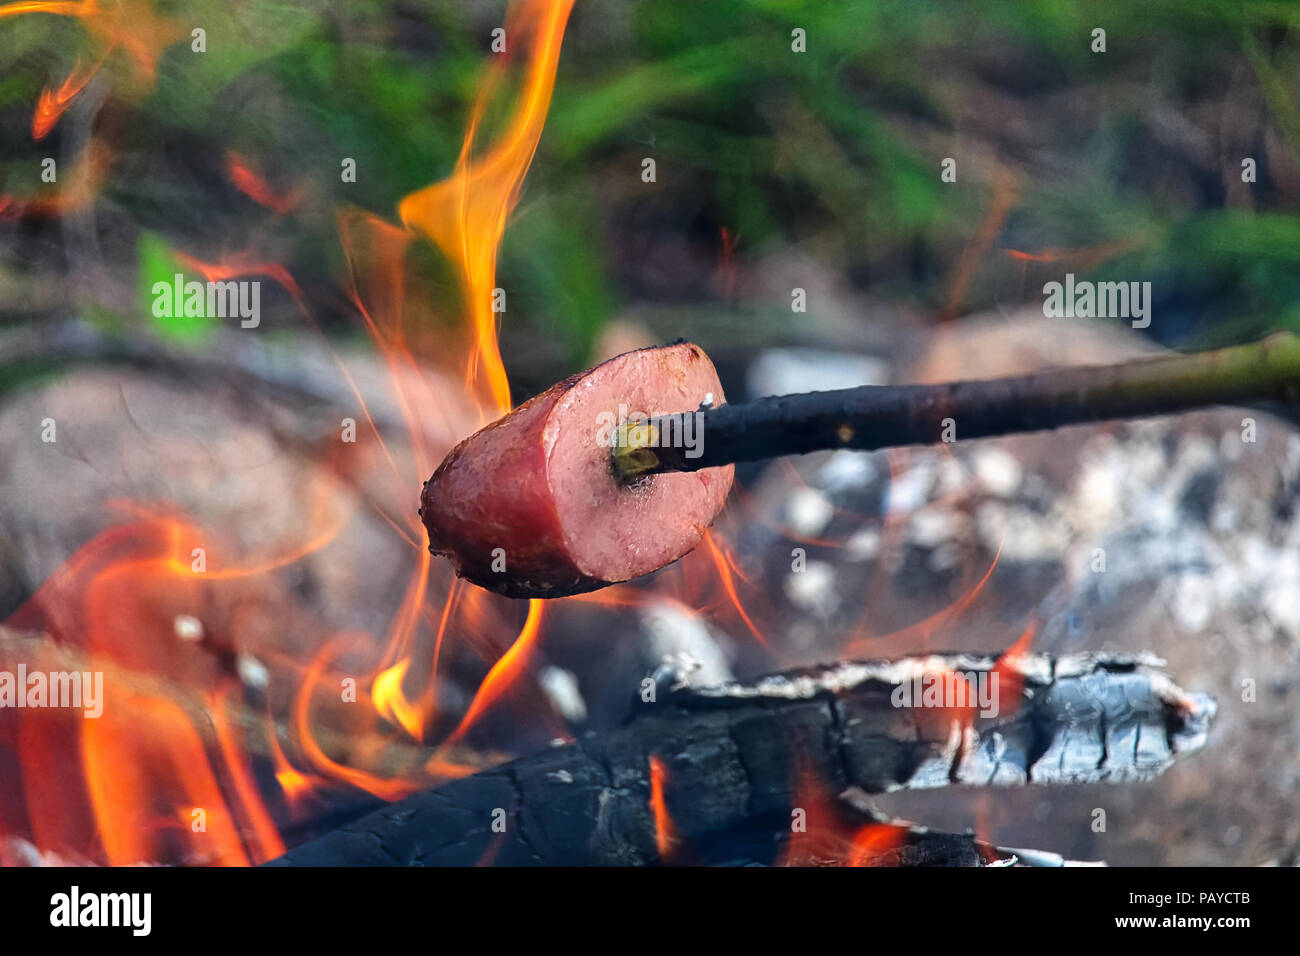 Cooking Over A Campfire Stock Photos Amp Cooking Over A